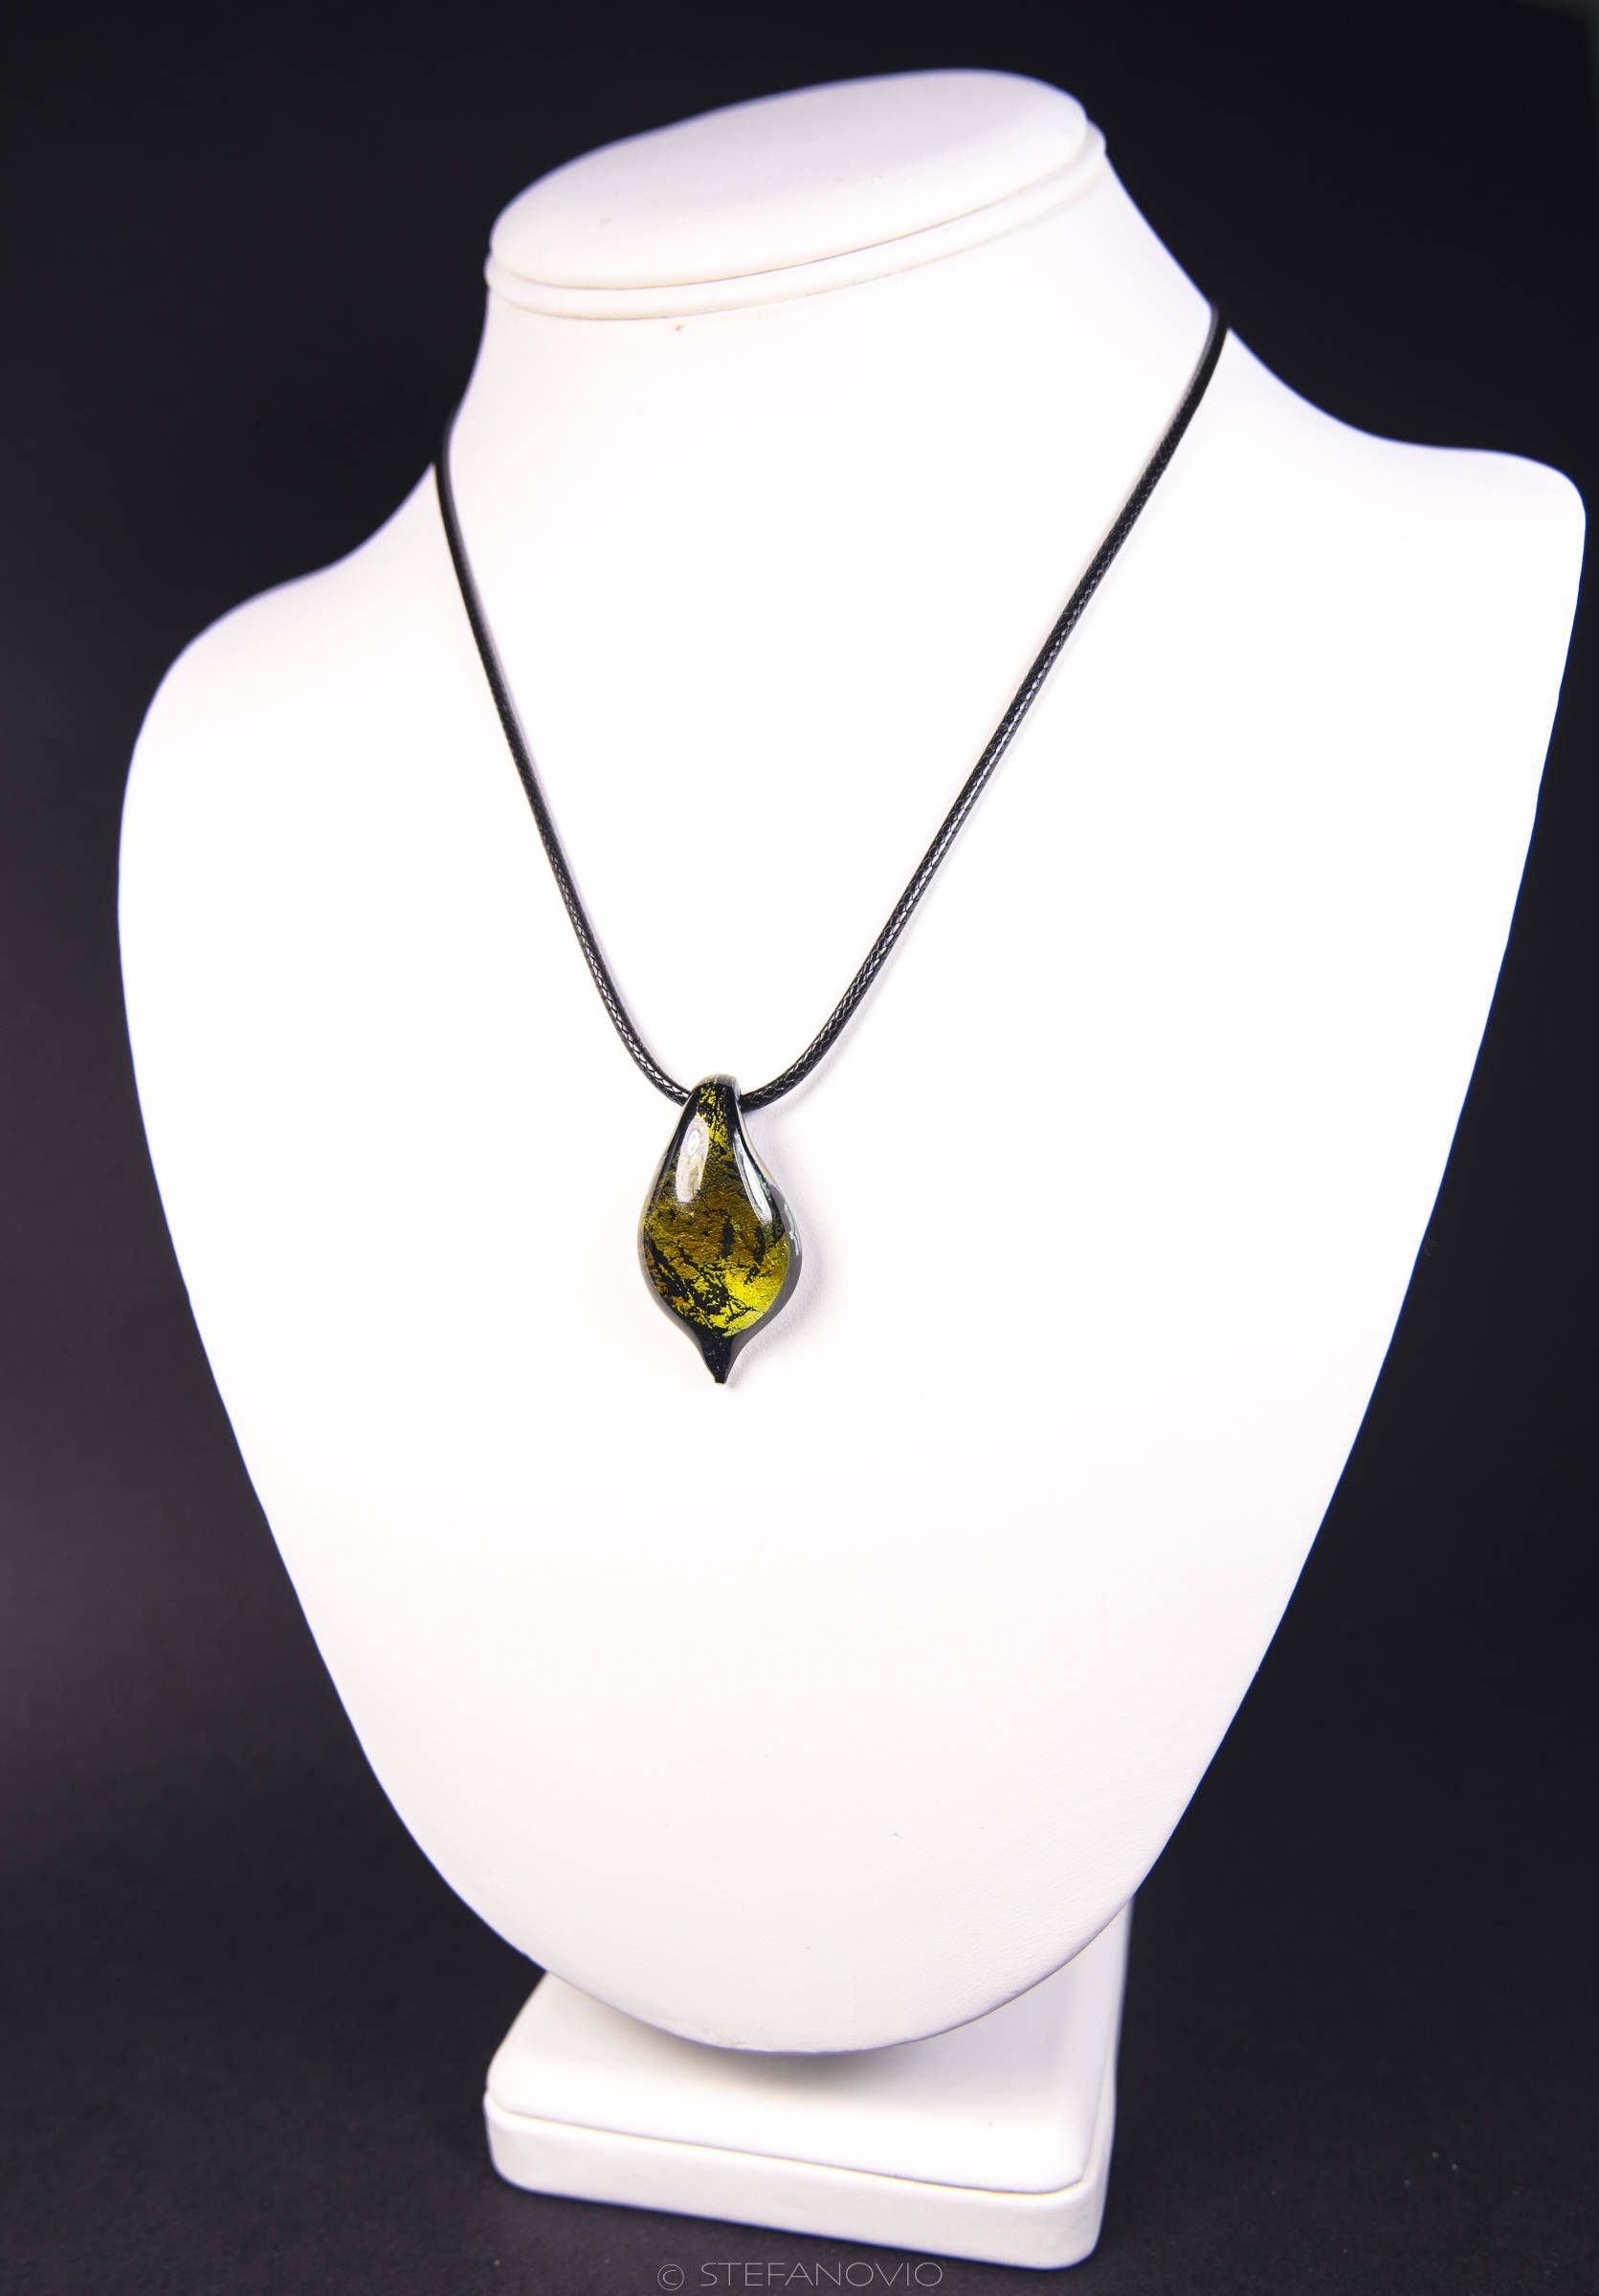 Murano Glass Pendant Necklace Handmade Silver Leaf Made in Italy